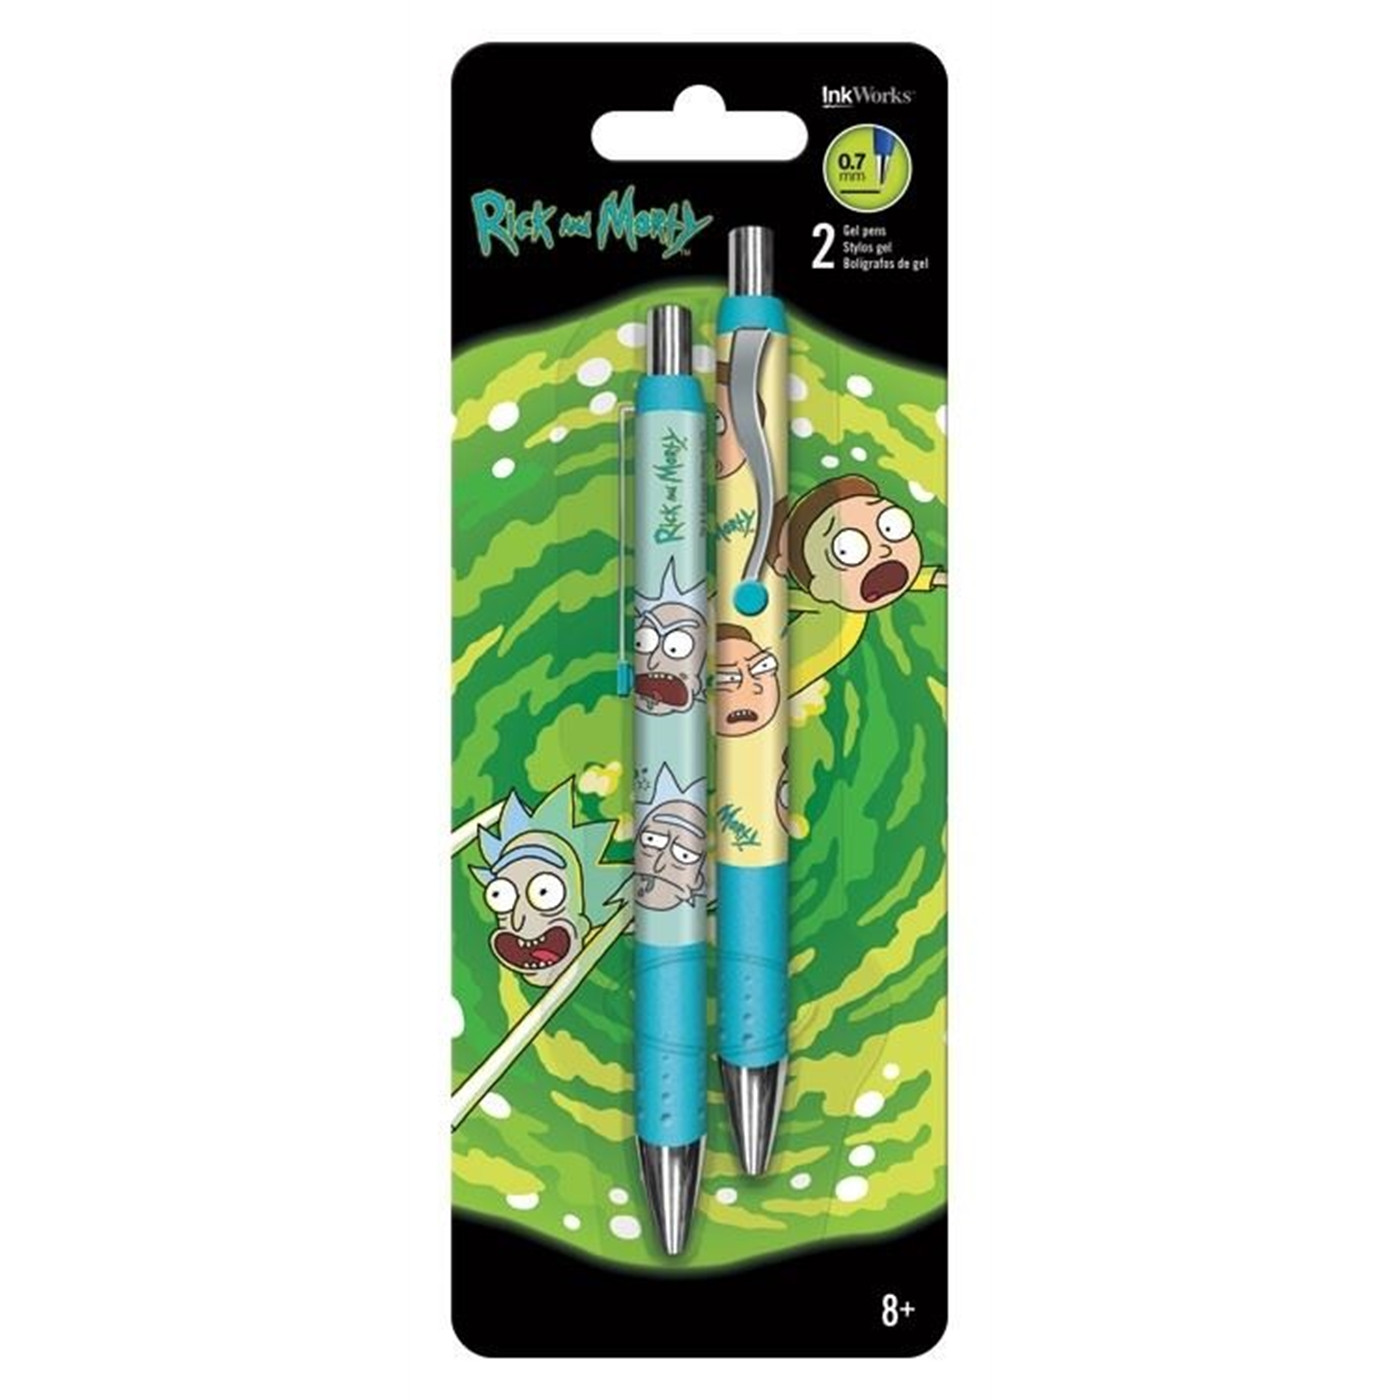 Rick and Morty Gel Pens - 2pk